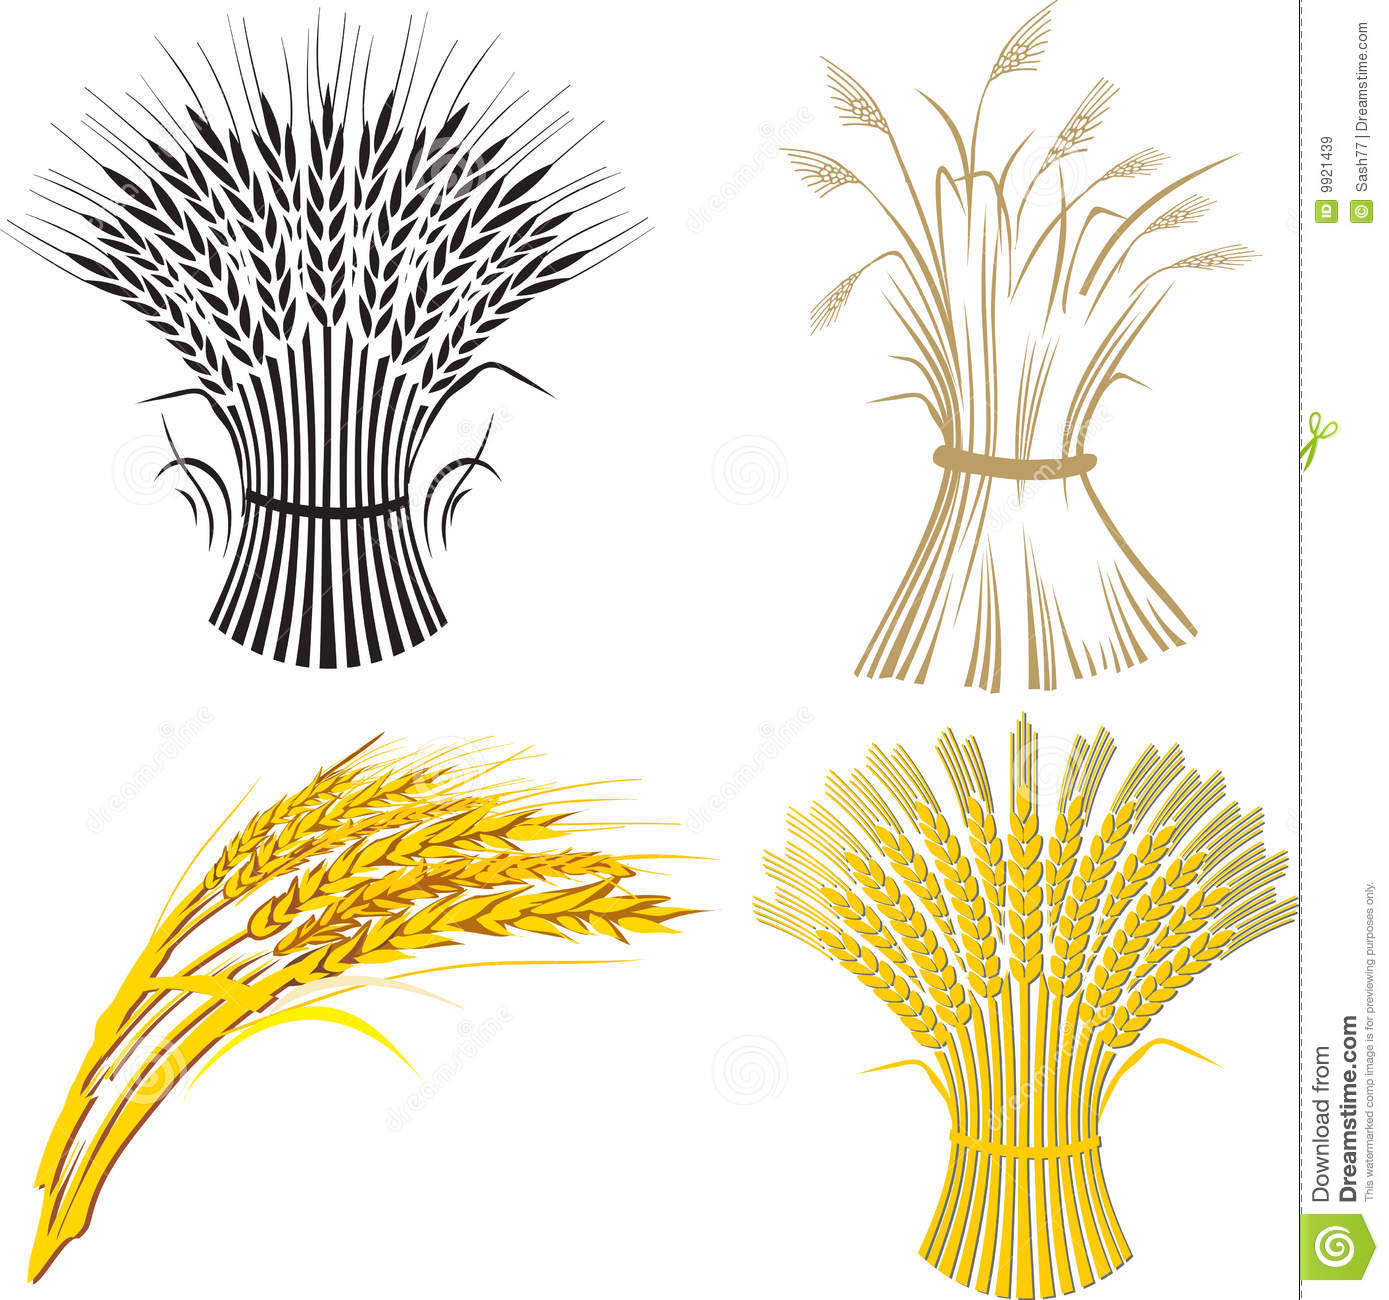 Four Wheat Sheaf Royalty Free Stock Images - Image: 9921439